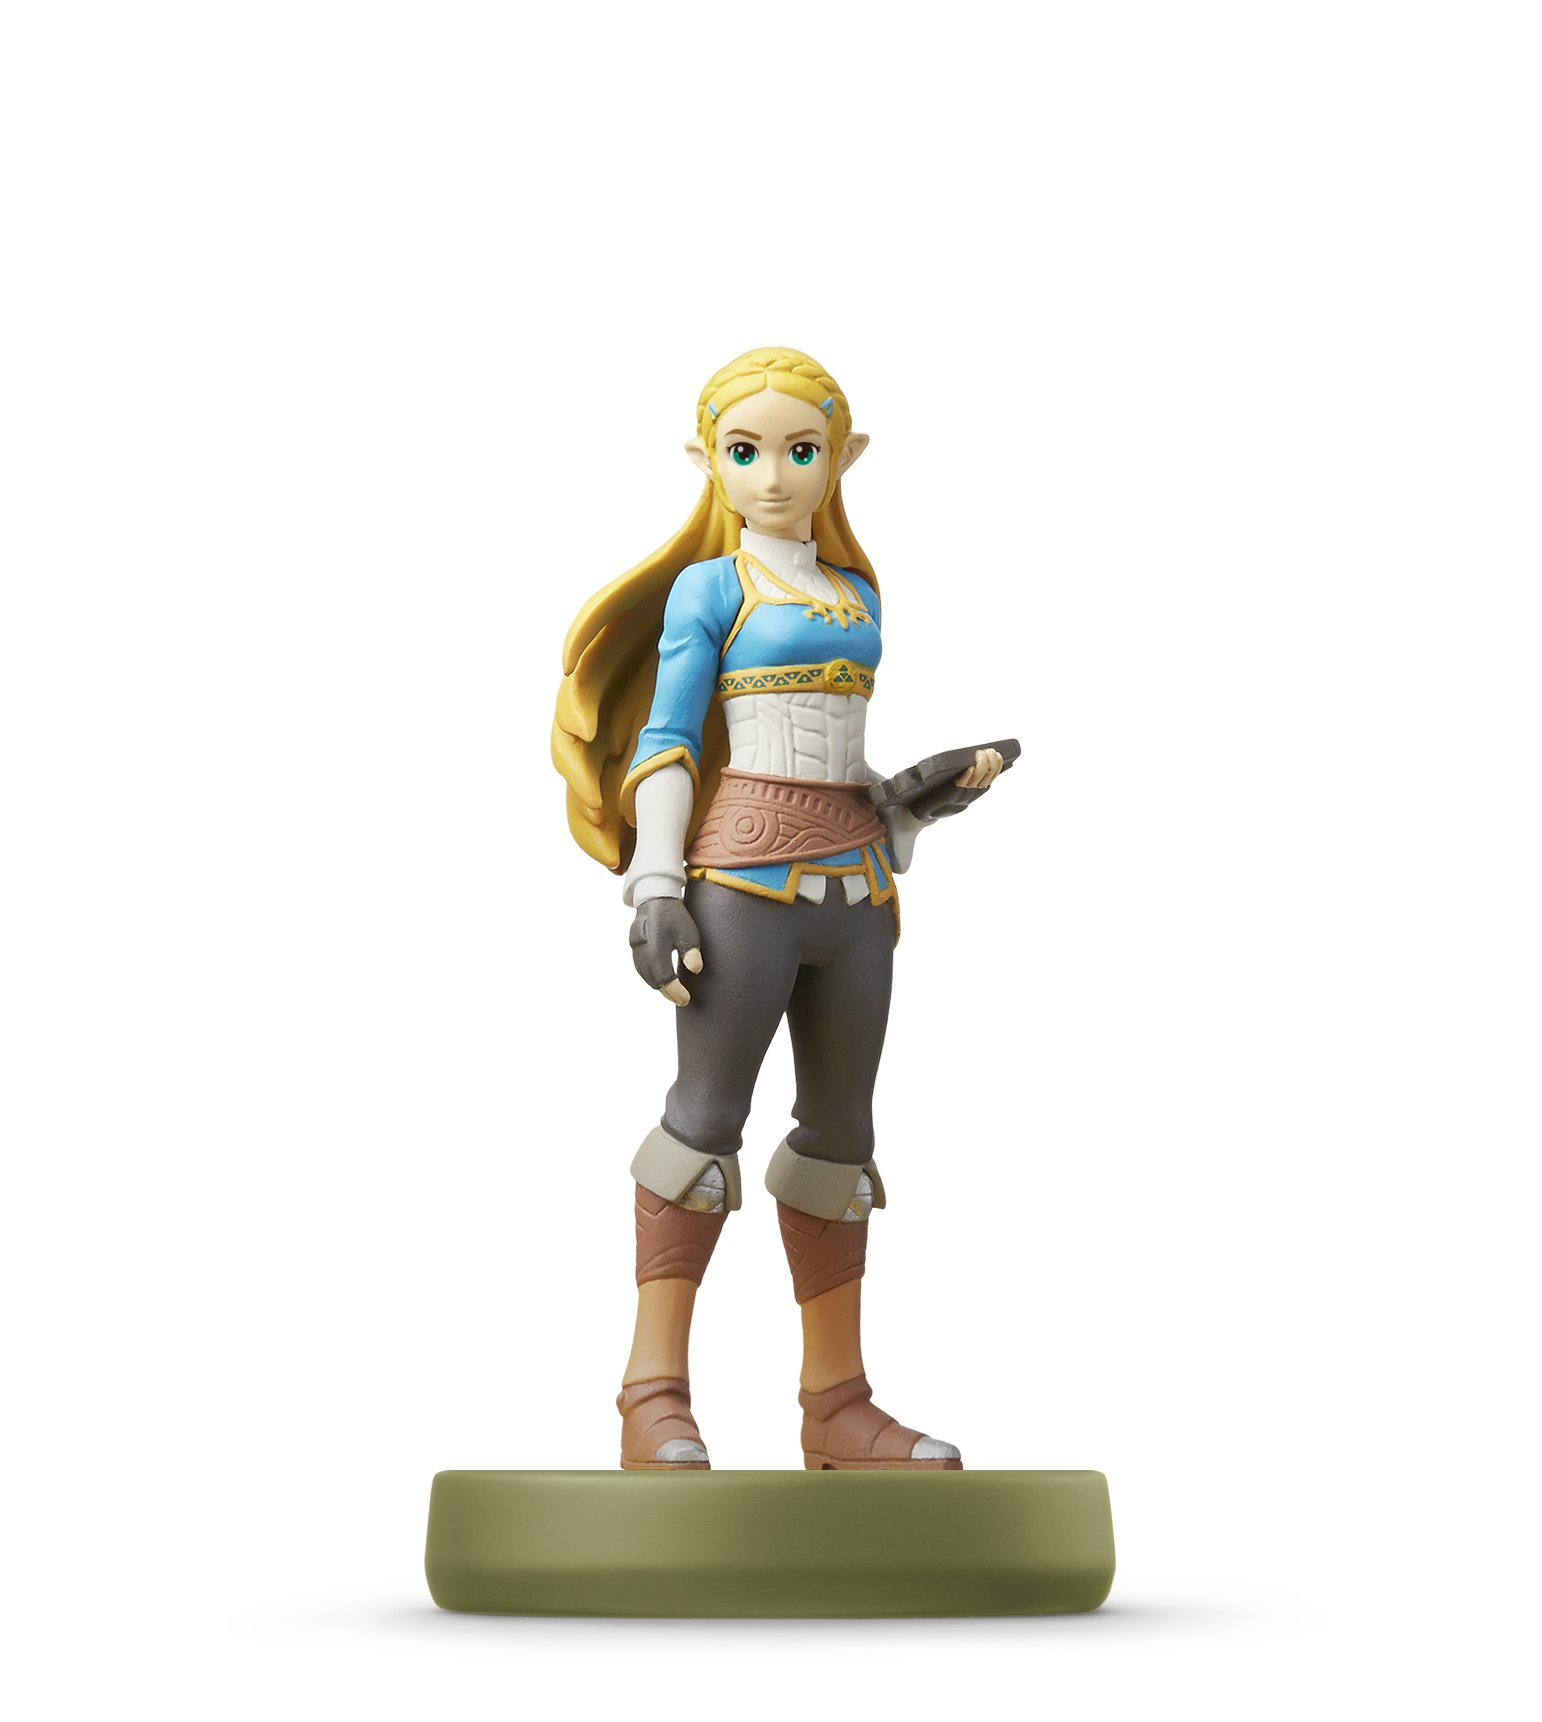 Buy Nintendo Amiibo Zelda Now!